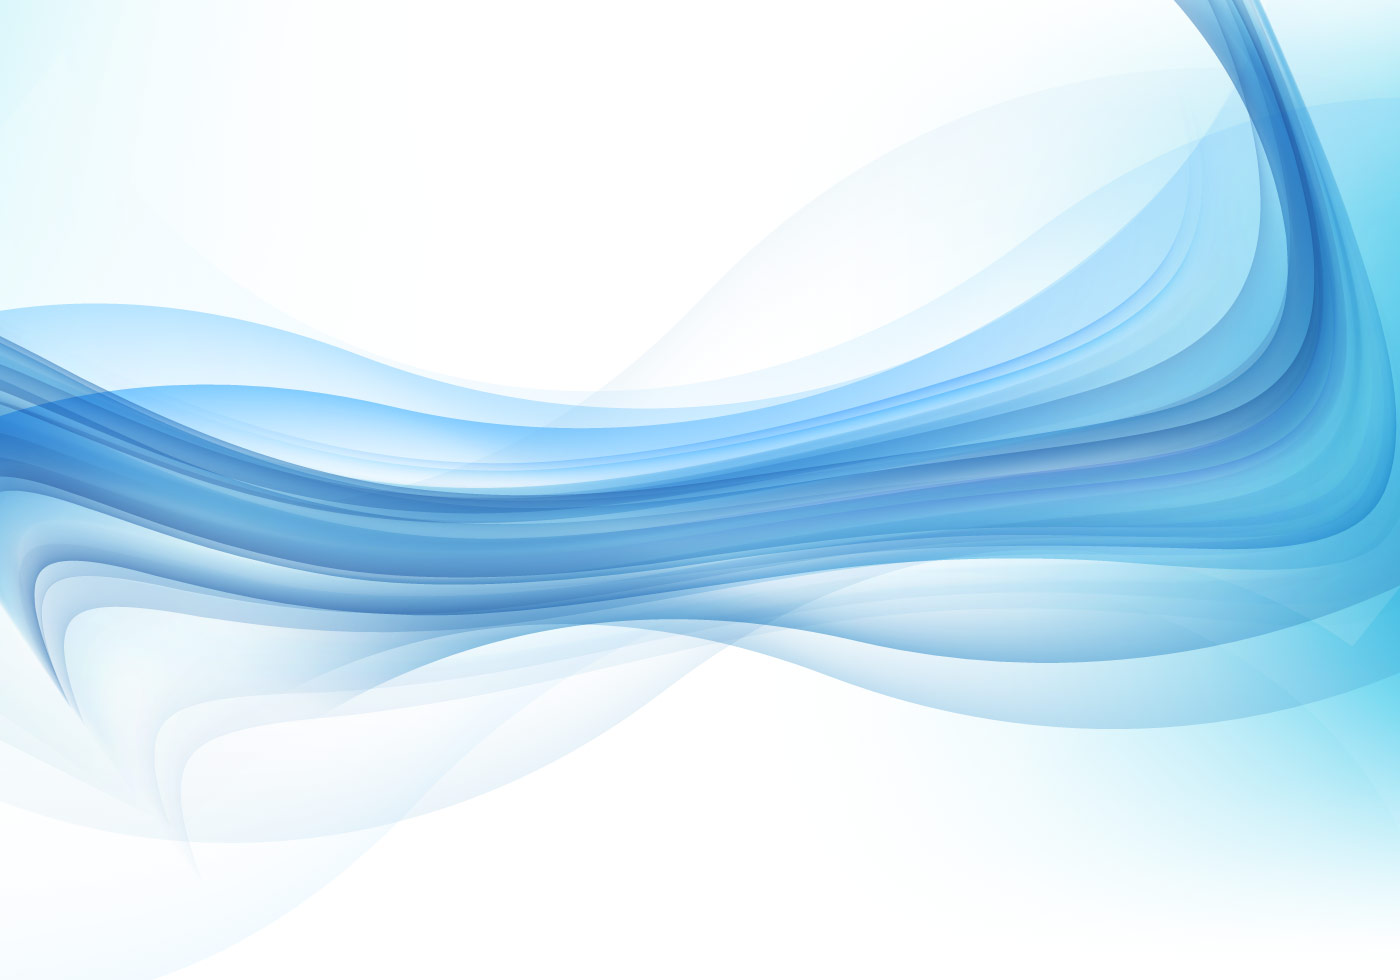 Black White And Silver Striped Wallpaper Abstract Blue Wave Background Download Free Vector Art